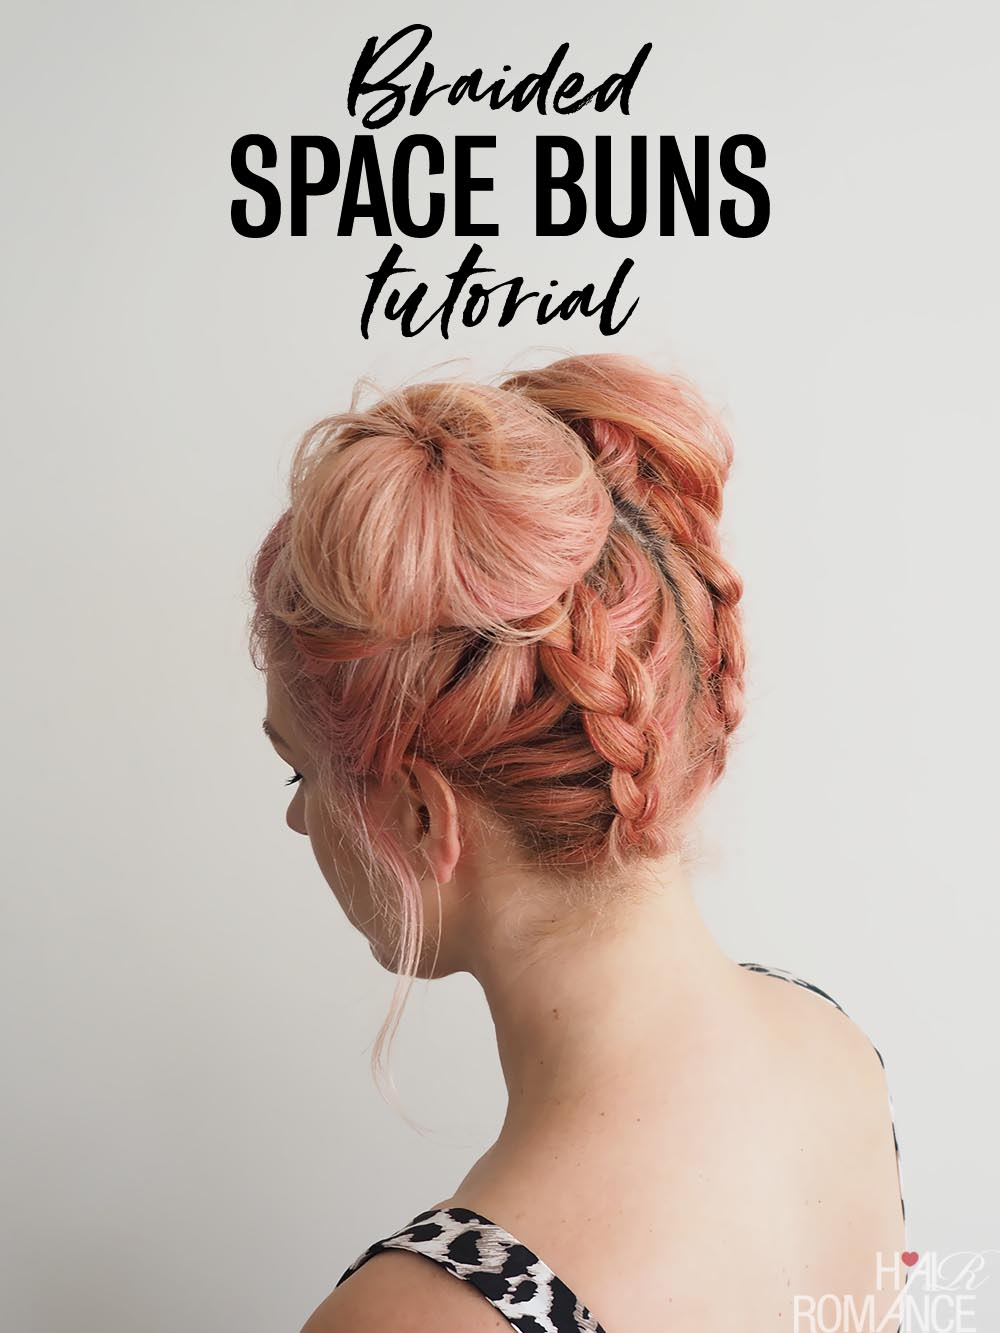 DIY Braided Area Buns Tutorial